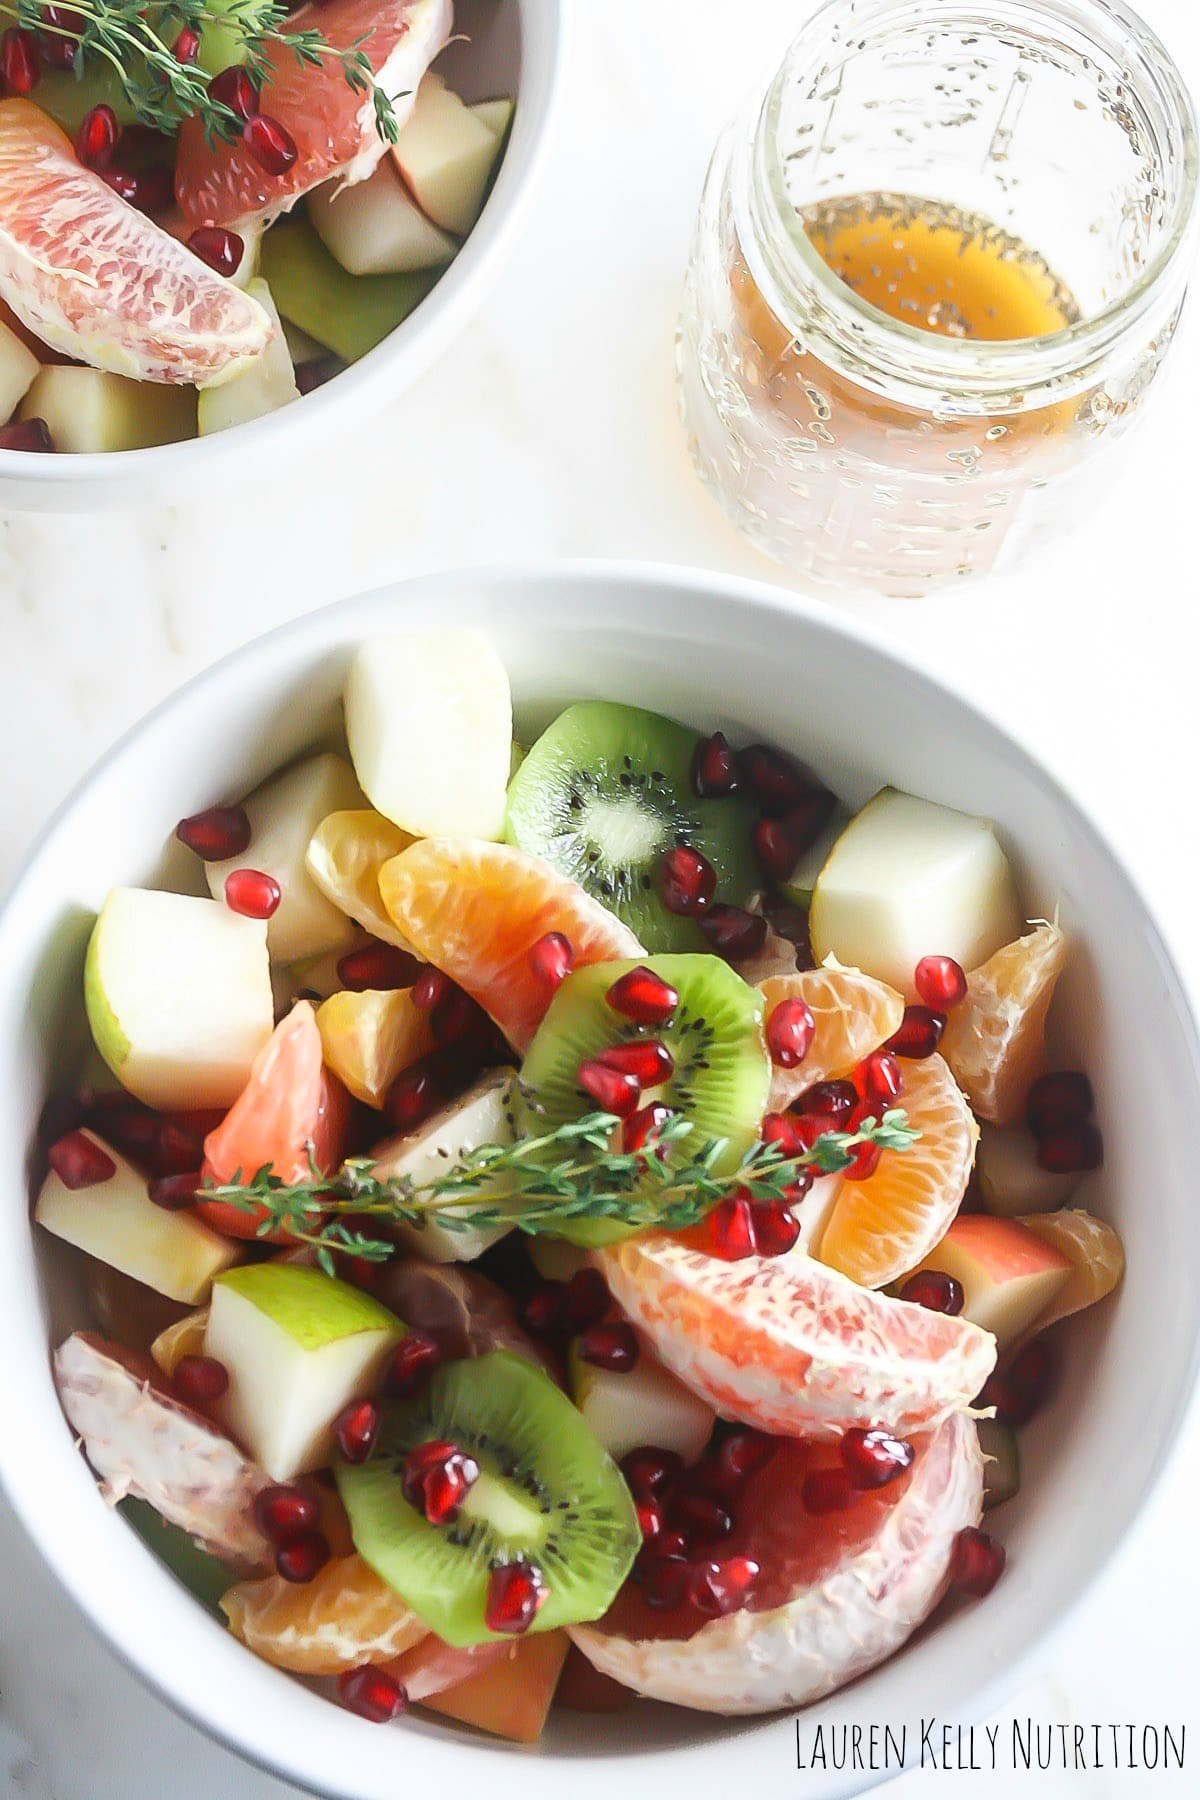 Winter Fruit Salad with Ginger Chia Dressing from Lauren Kelly Nutrition